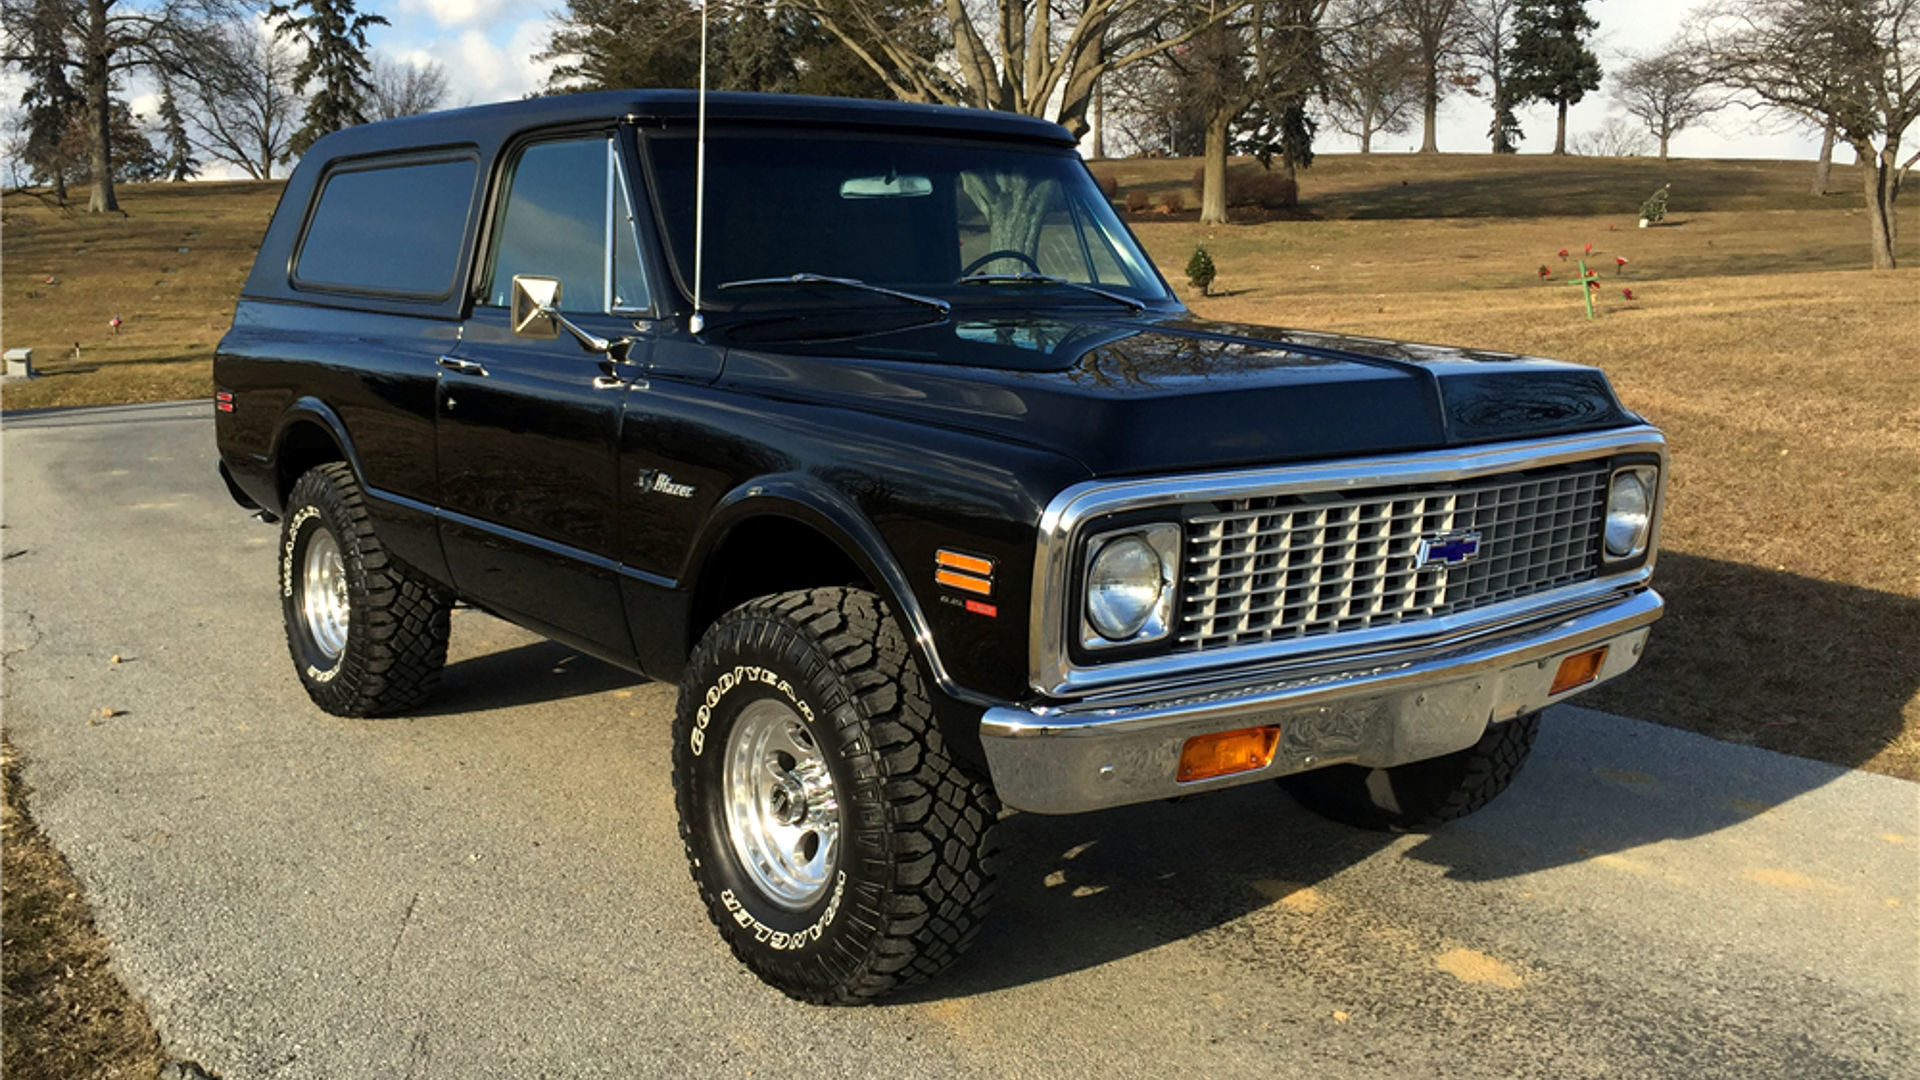 Why Did This 1971 Chevy K5 Blazer Sell For $220K